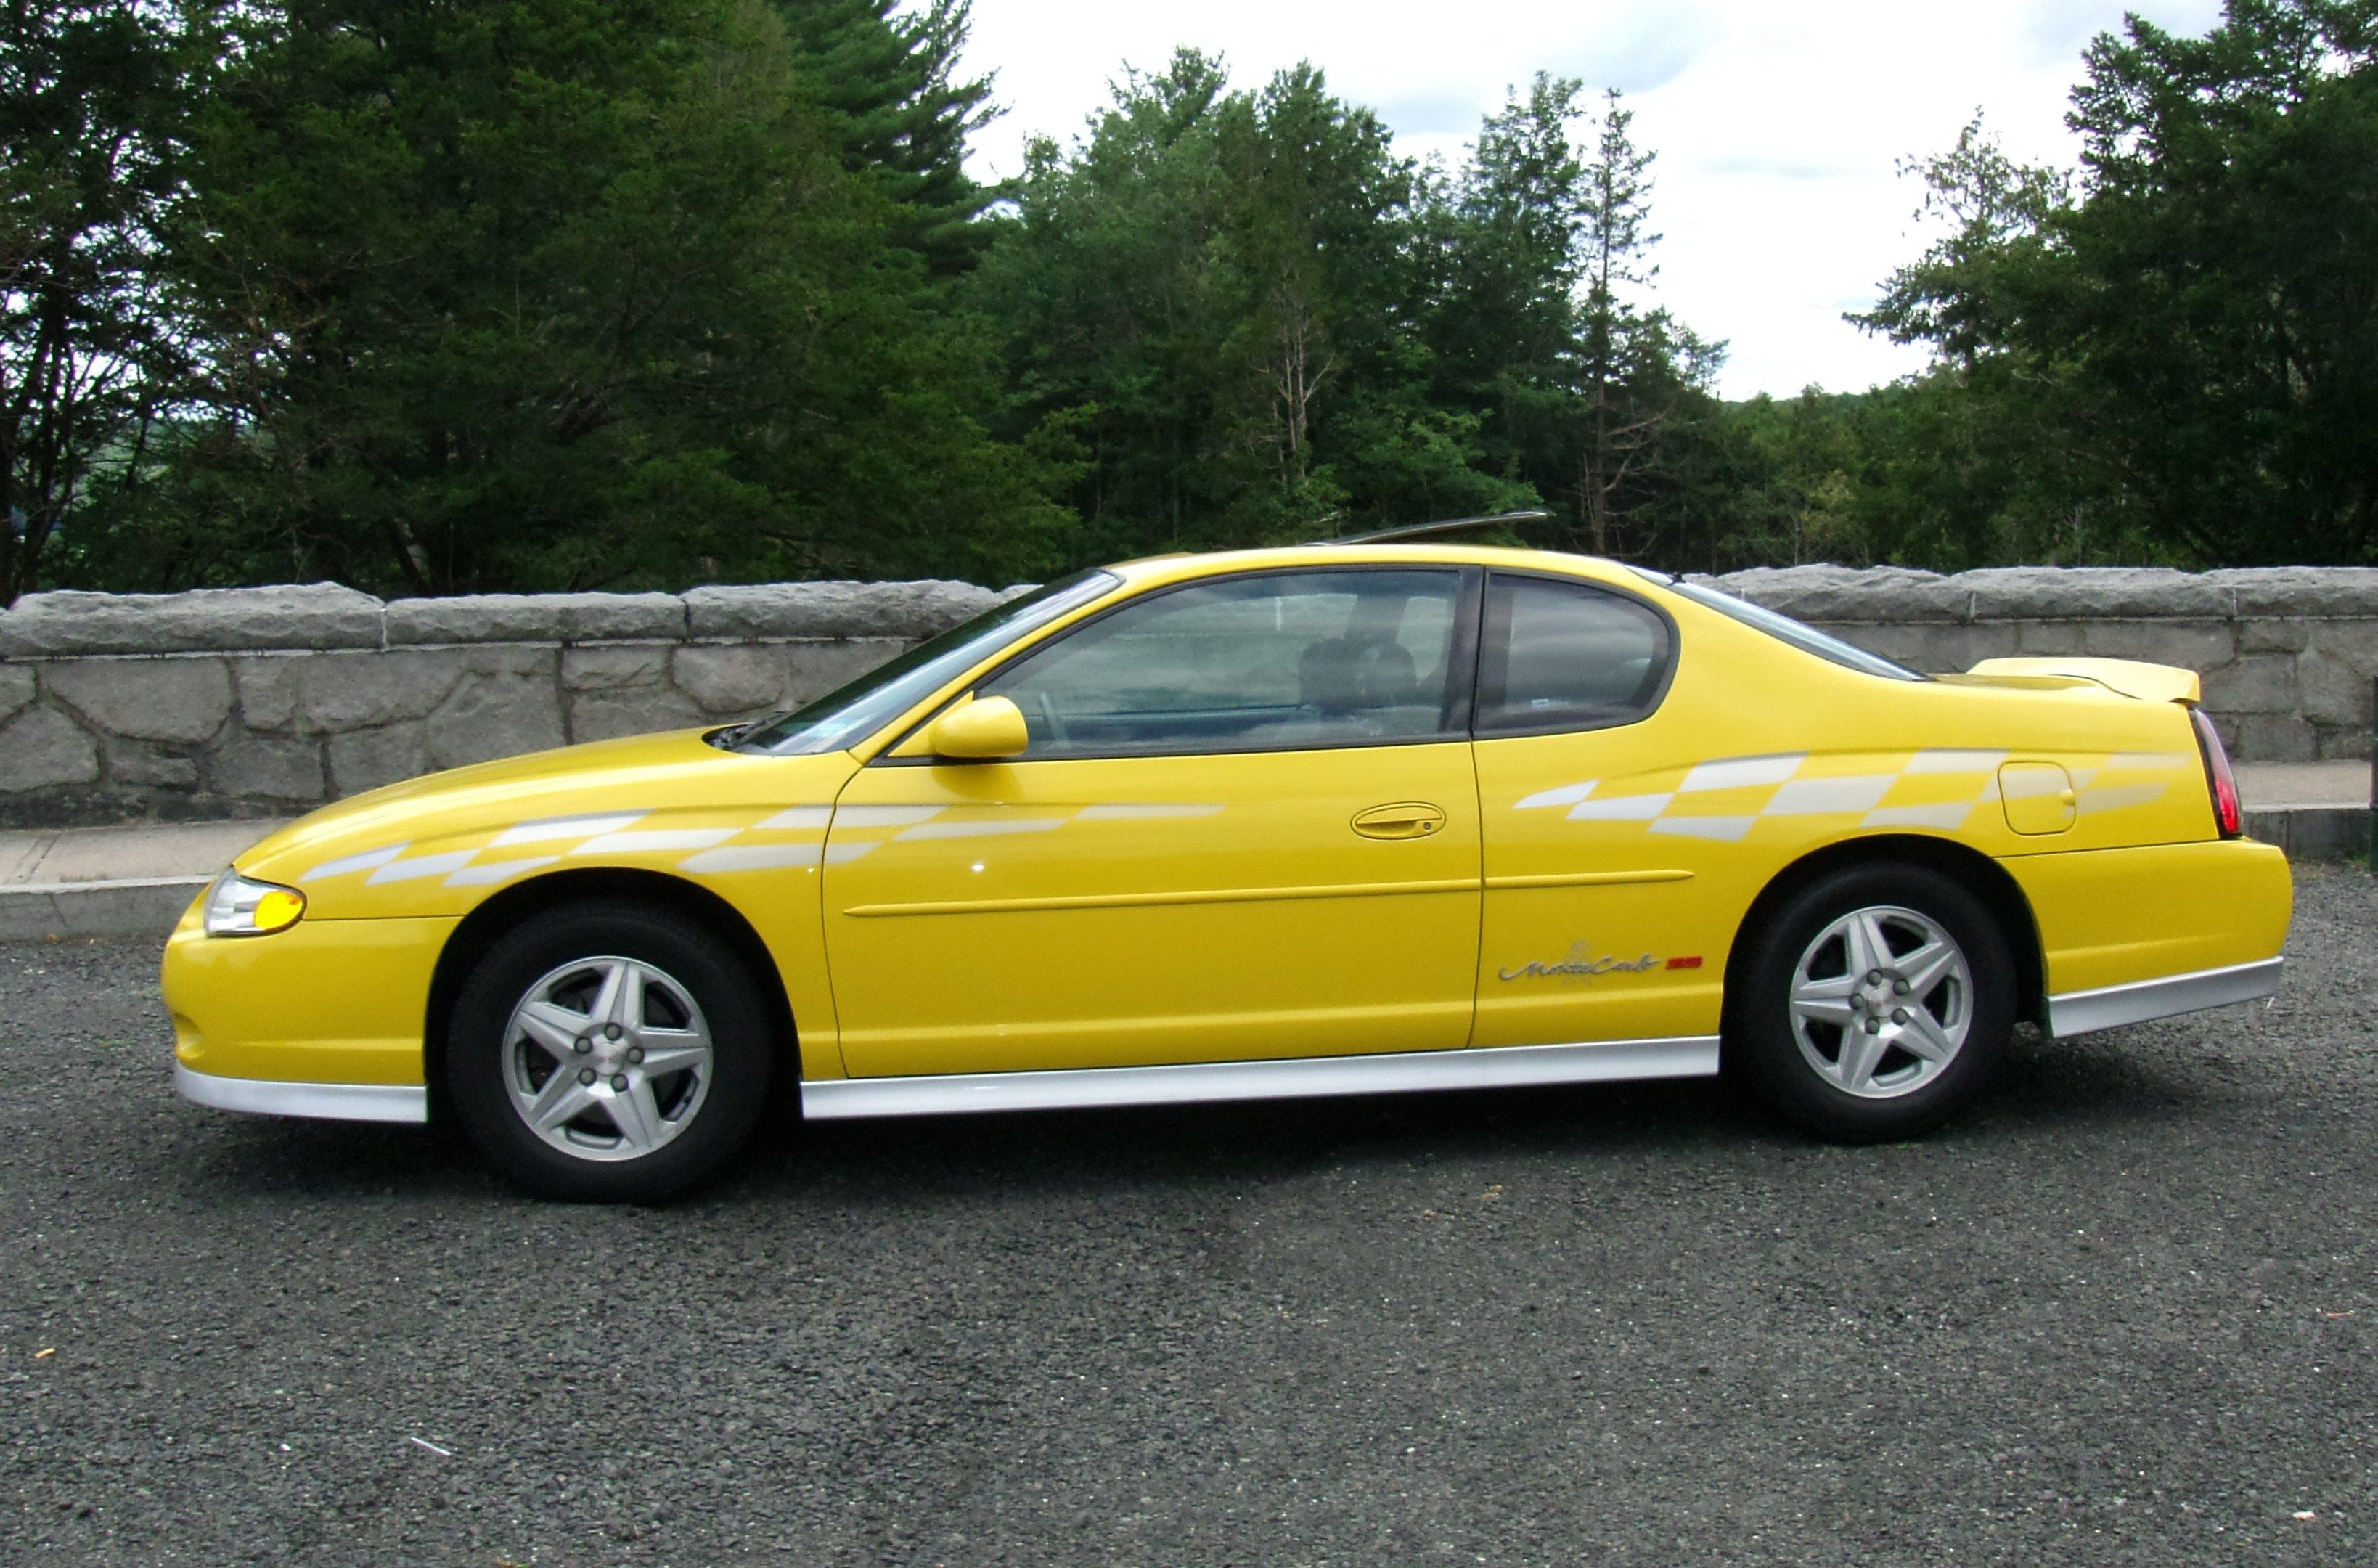 2002 Monte Carlo Ss Pace Car Chevrolet Chevy